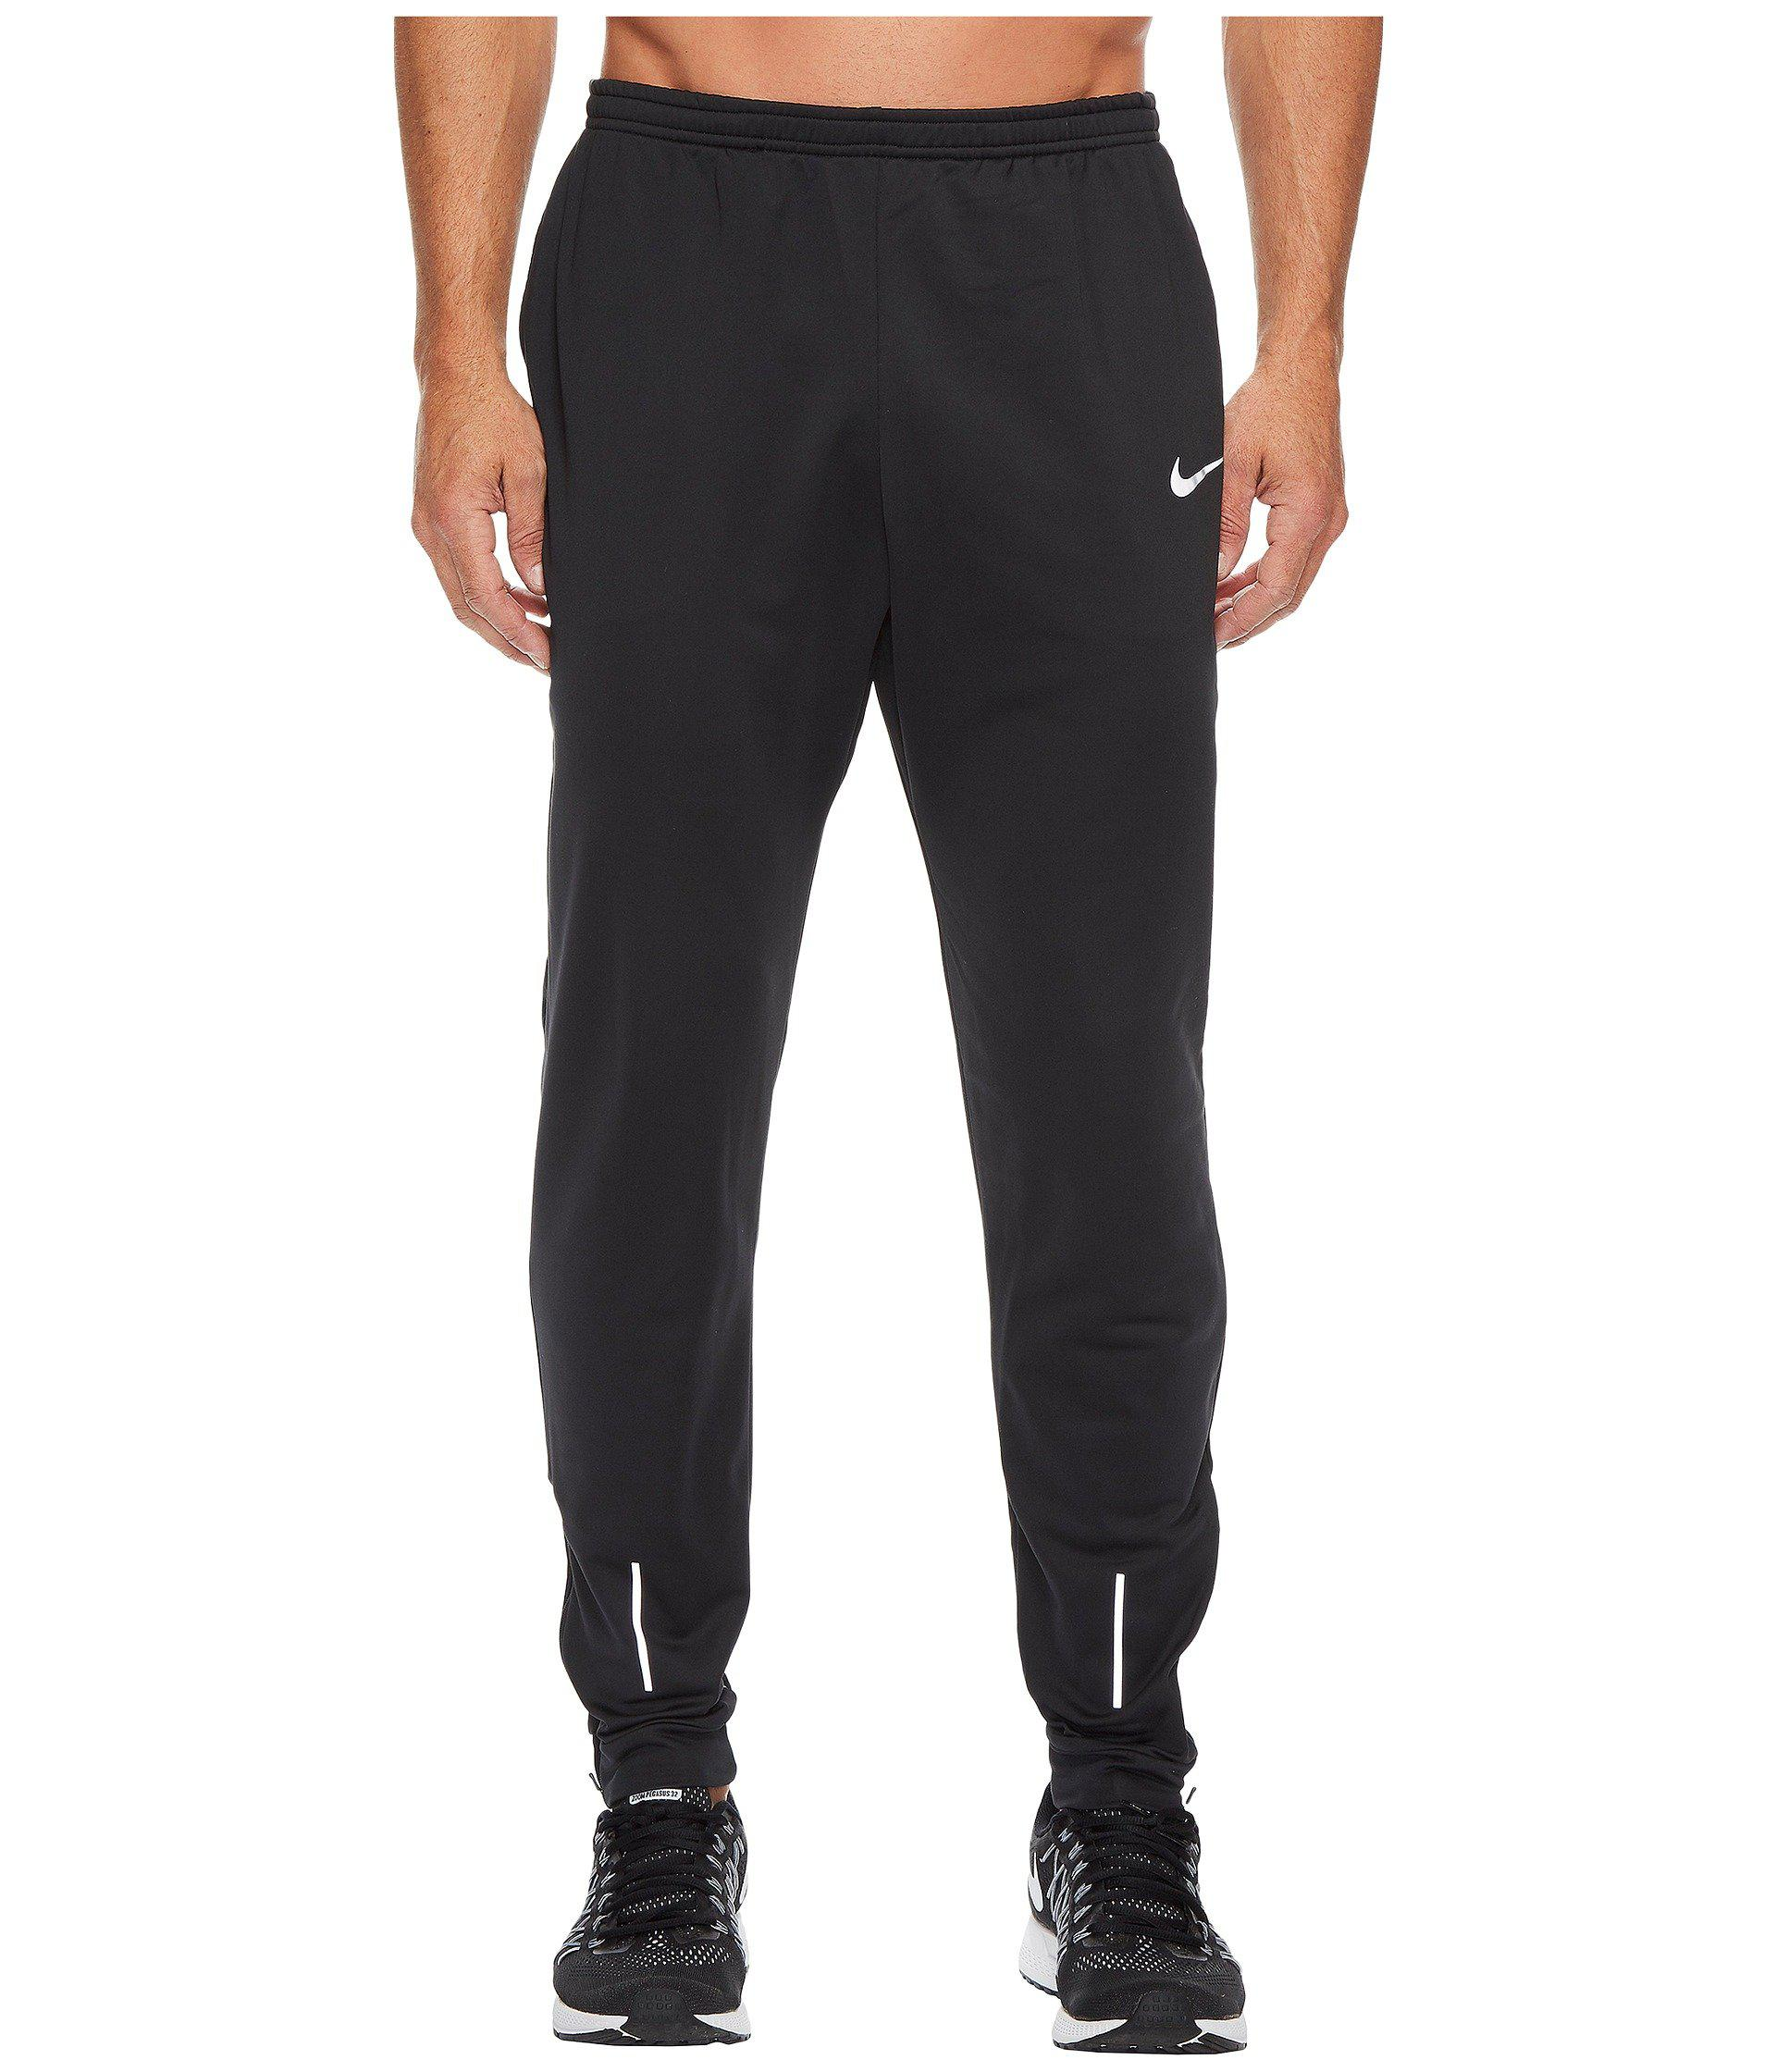 Lyst - Nike Therma Essential Running Pant in Black for Men 534de7e7a2b